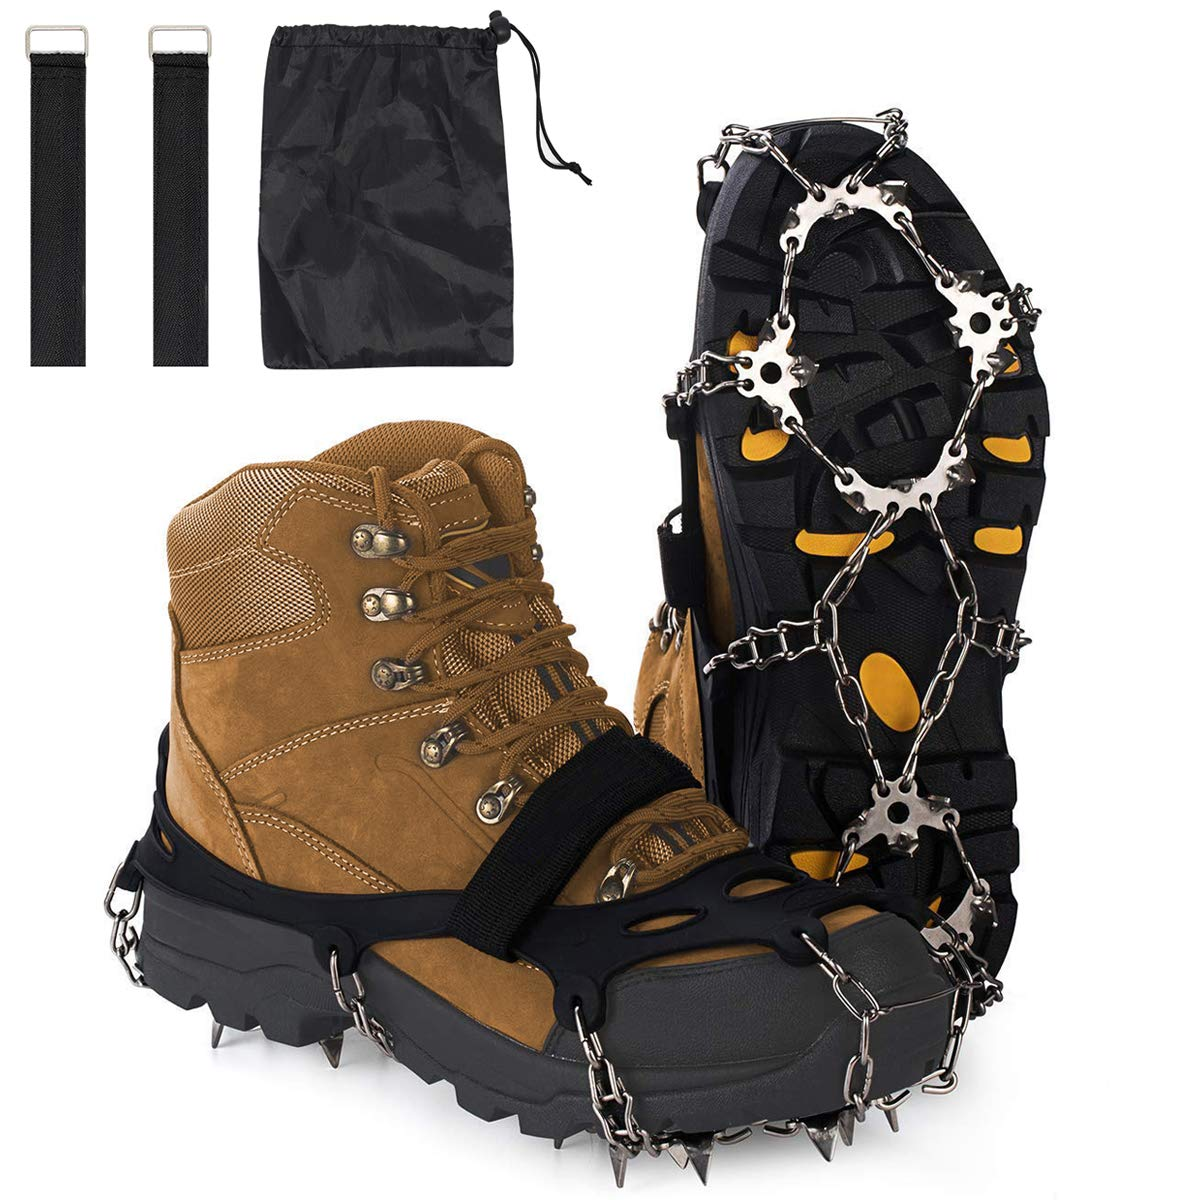 Snow Ice Cleats Anti-Slip Shoes Boot Traction Spike Crampons Climbing Hiking